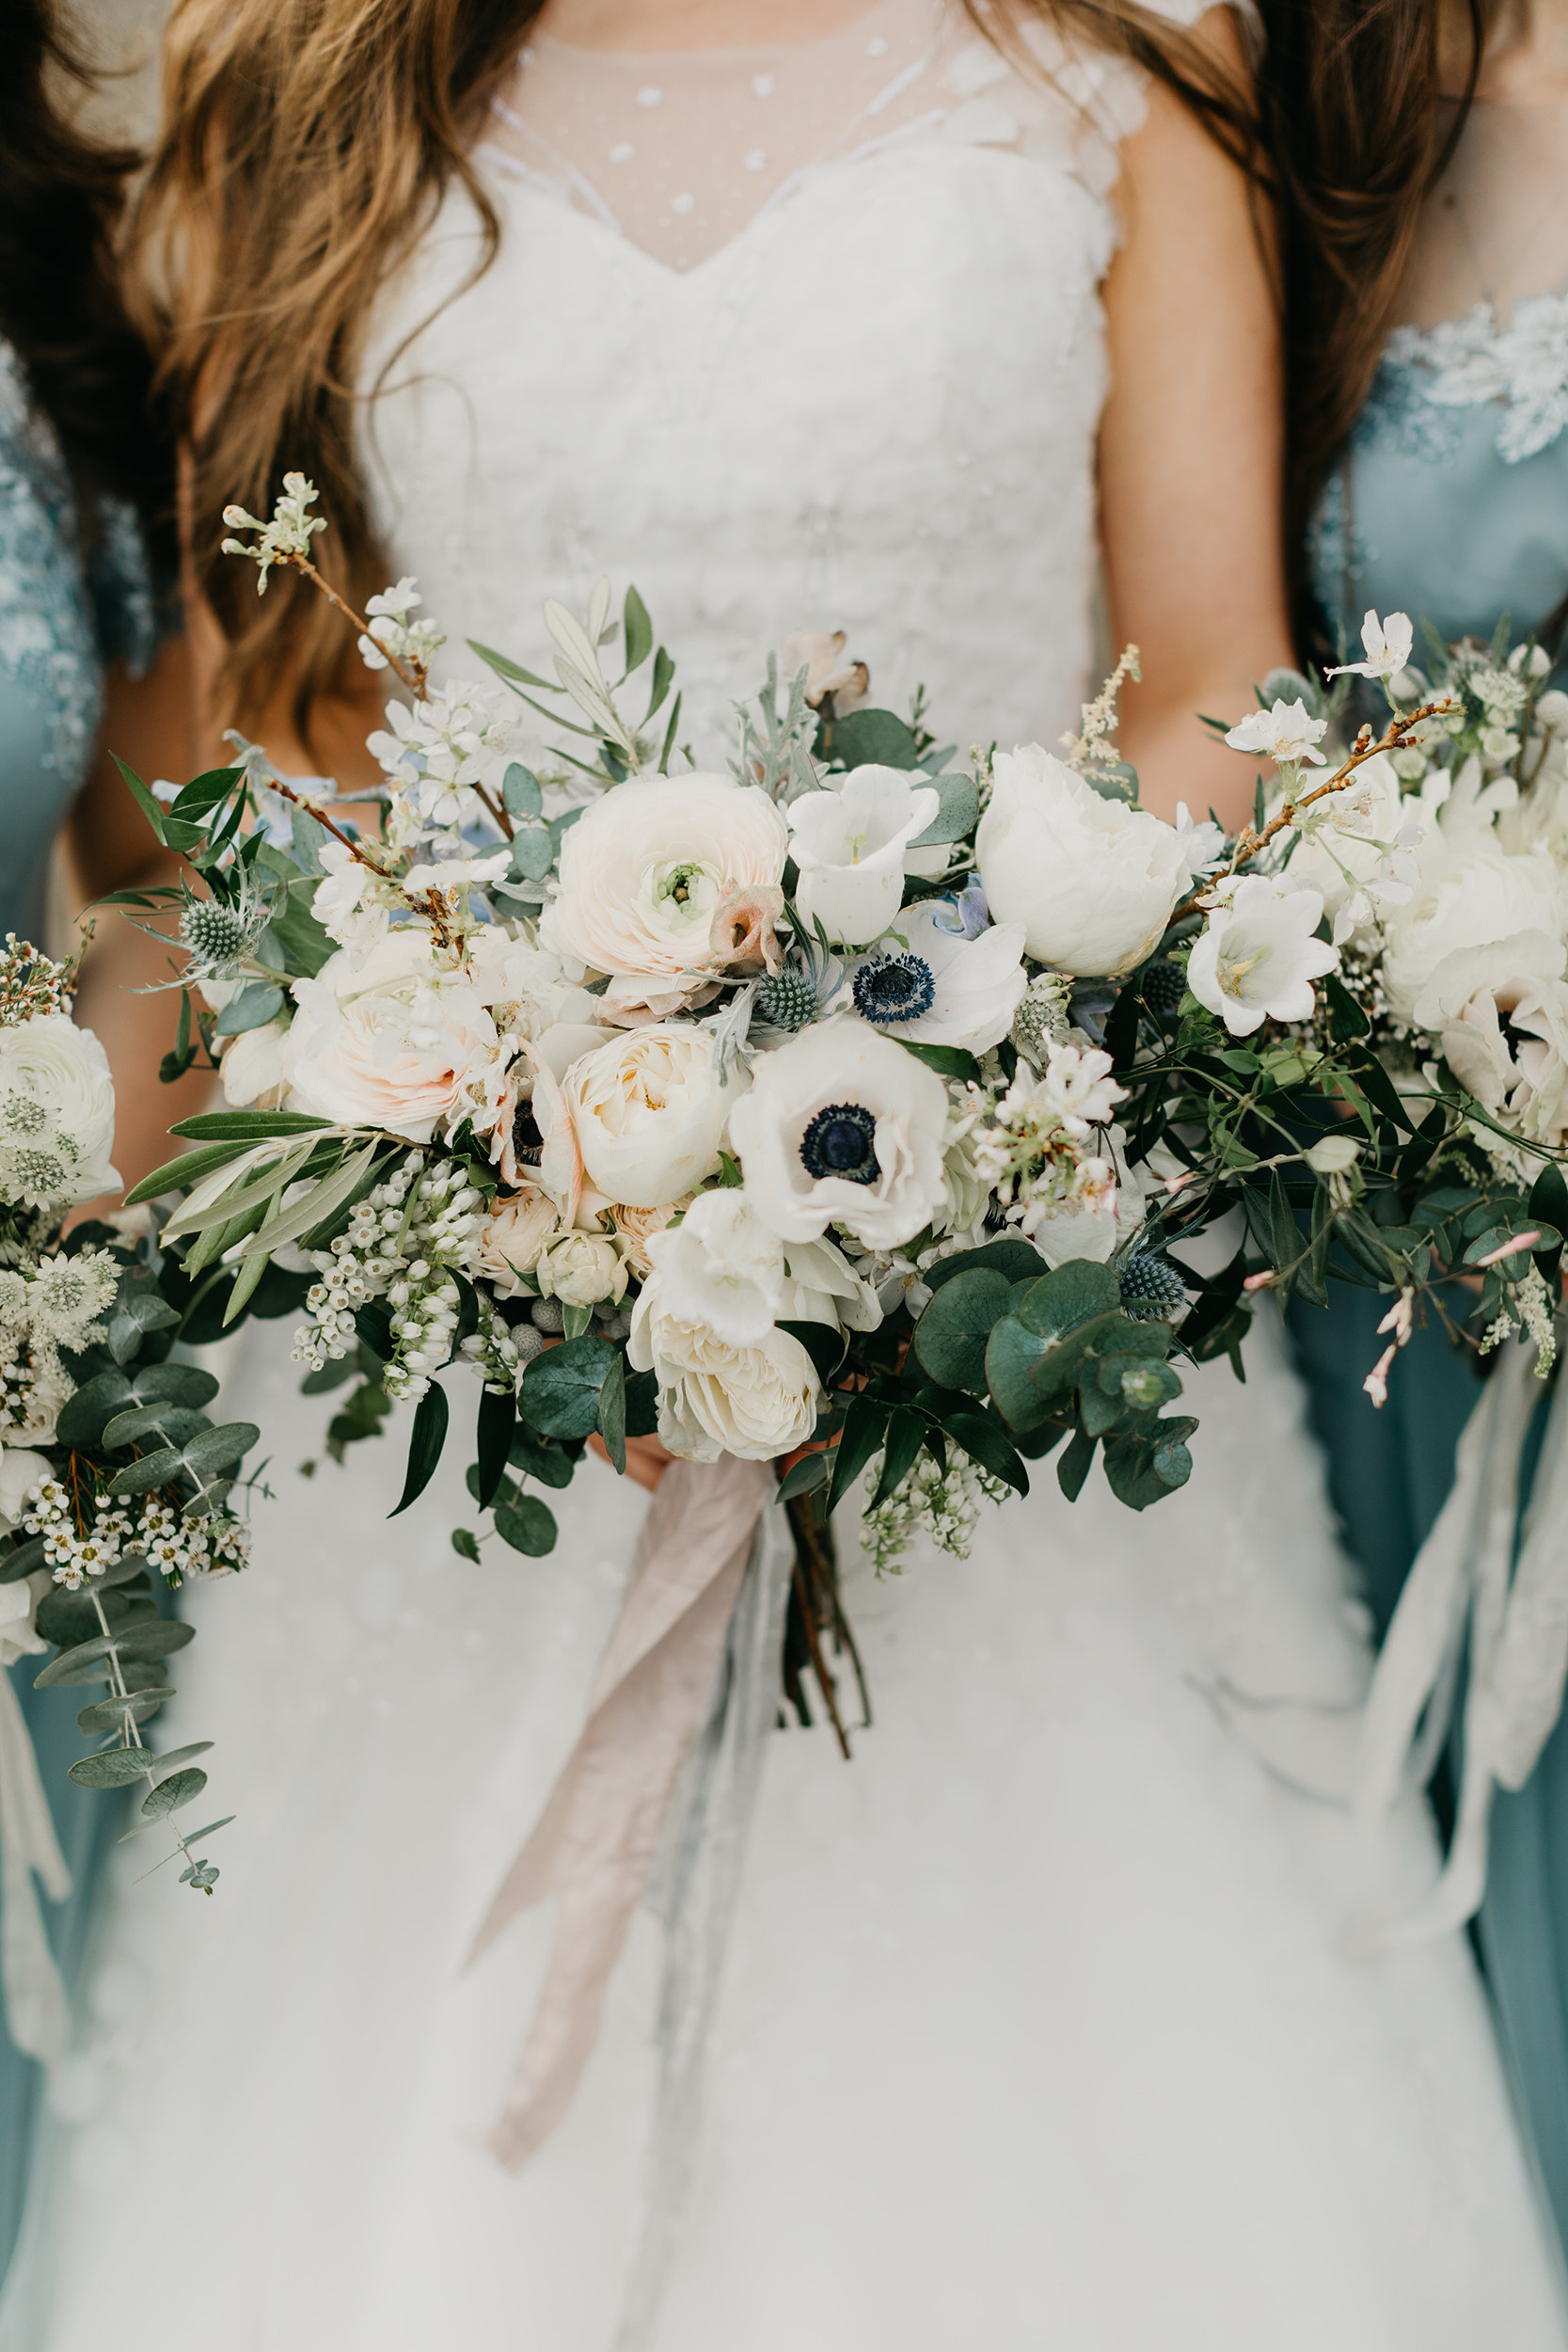 Violette-fleurs-event-design-roseville-Nelli-noel-photography-the-falls-event-center-Curated-bride-bouquet-lush-whimsical.jpg